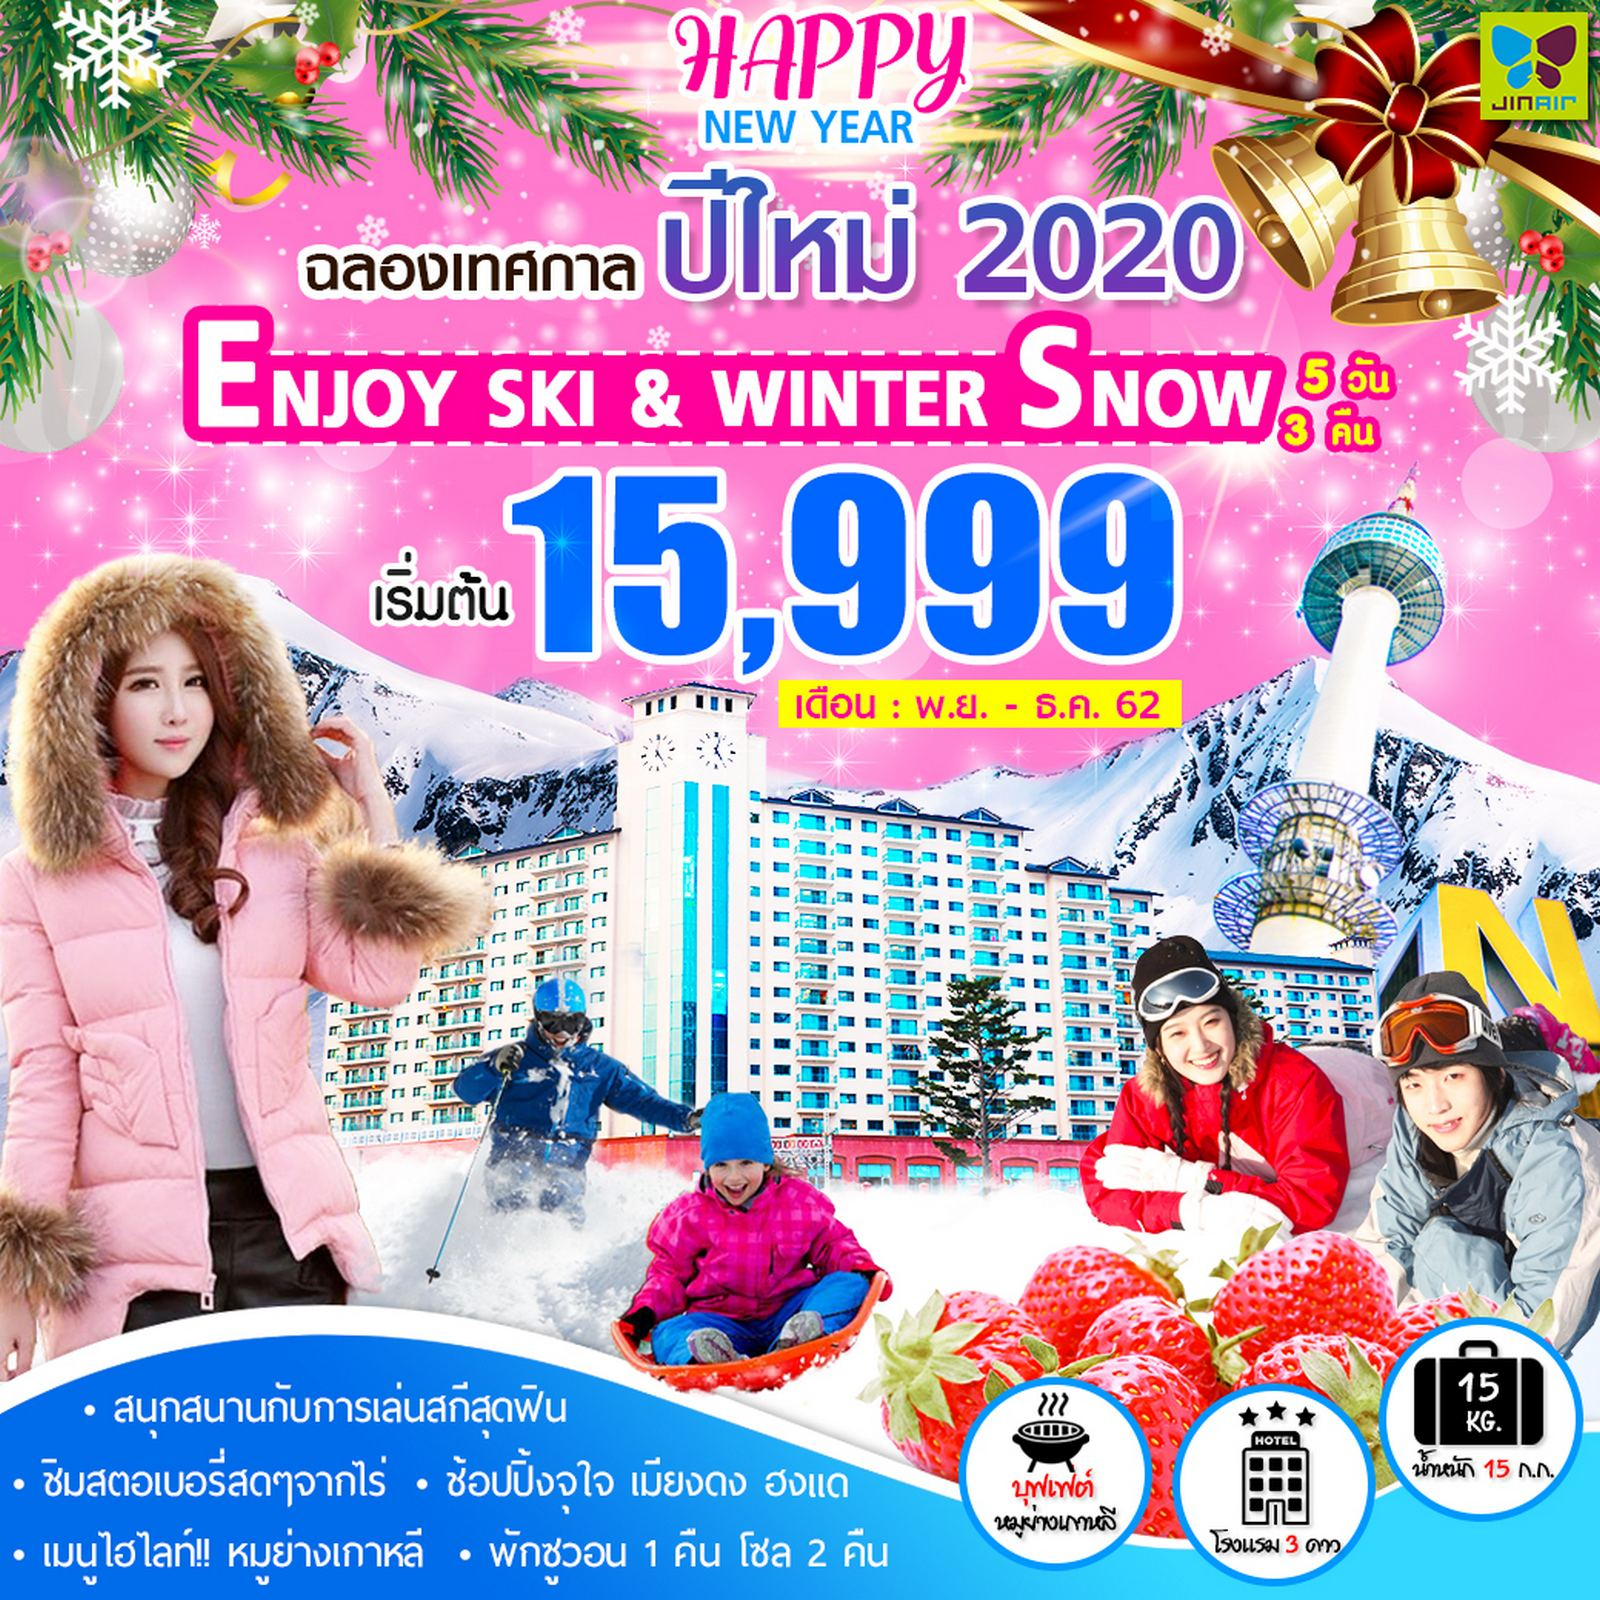 ENJOY SEI & WINTER SNOW  5D 3N